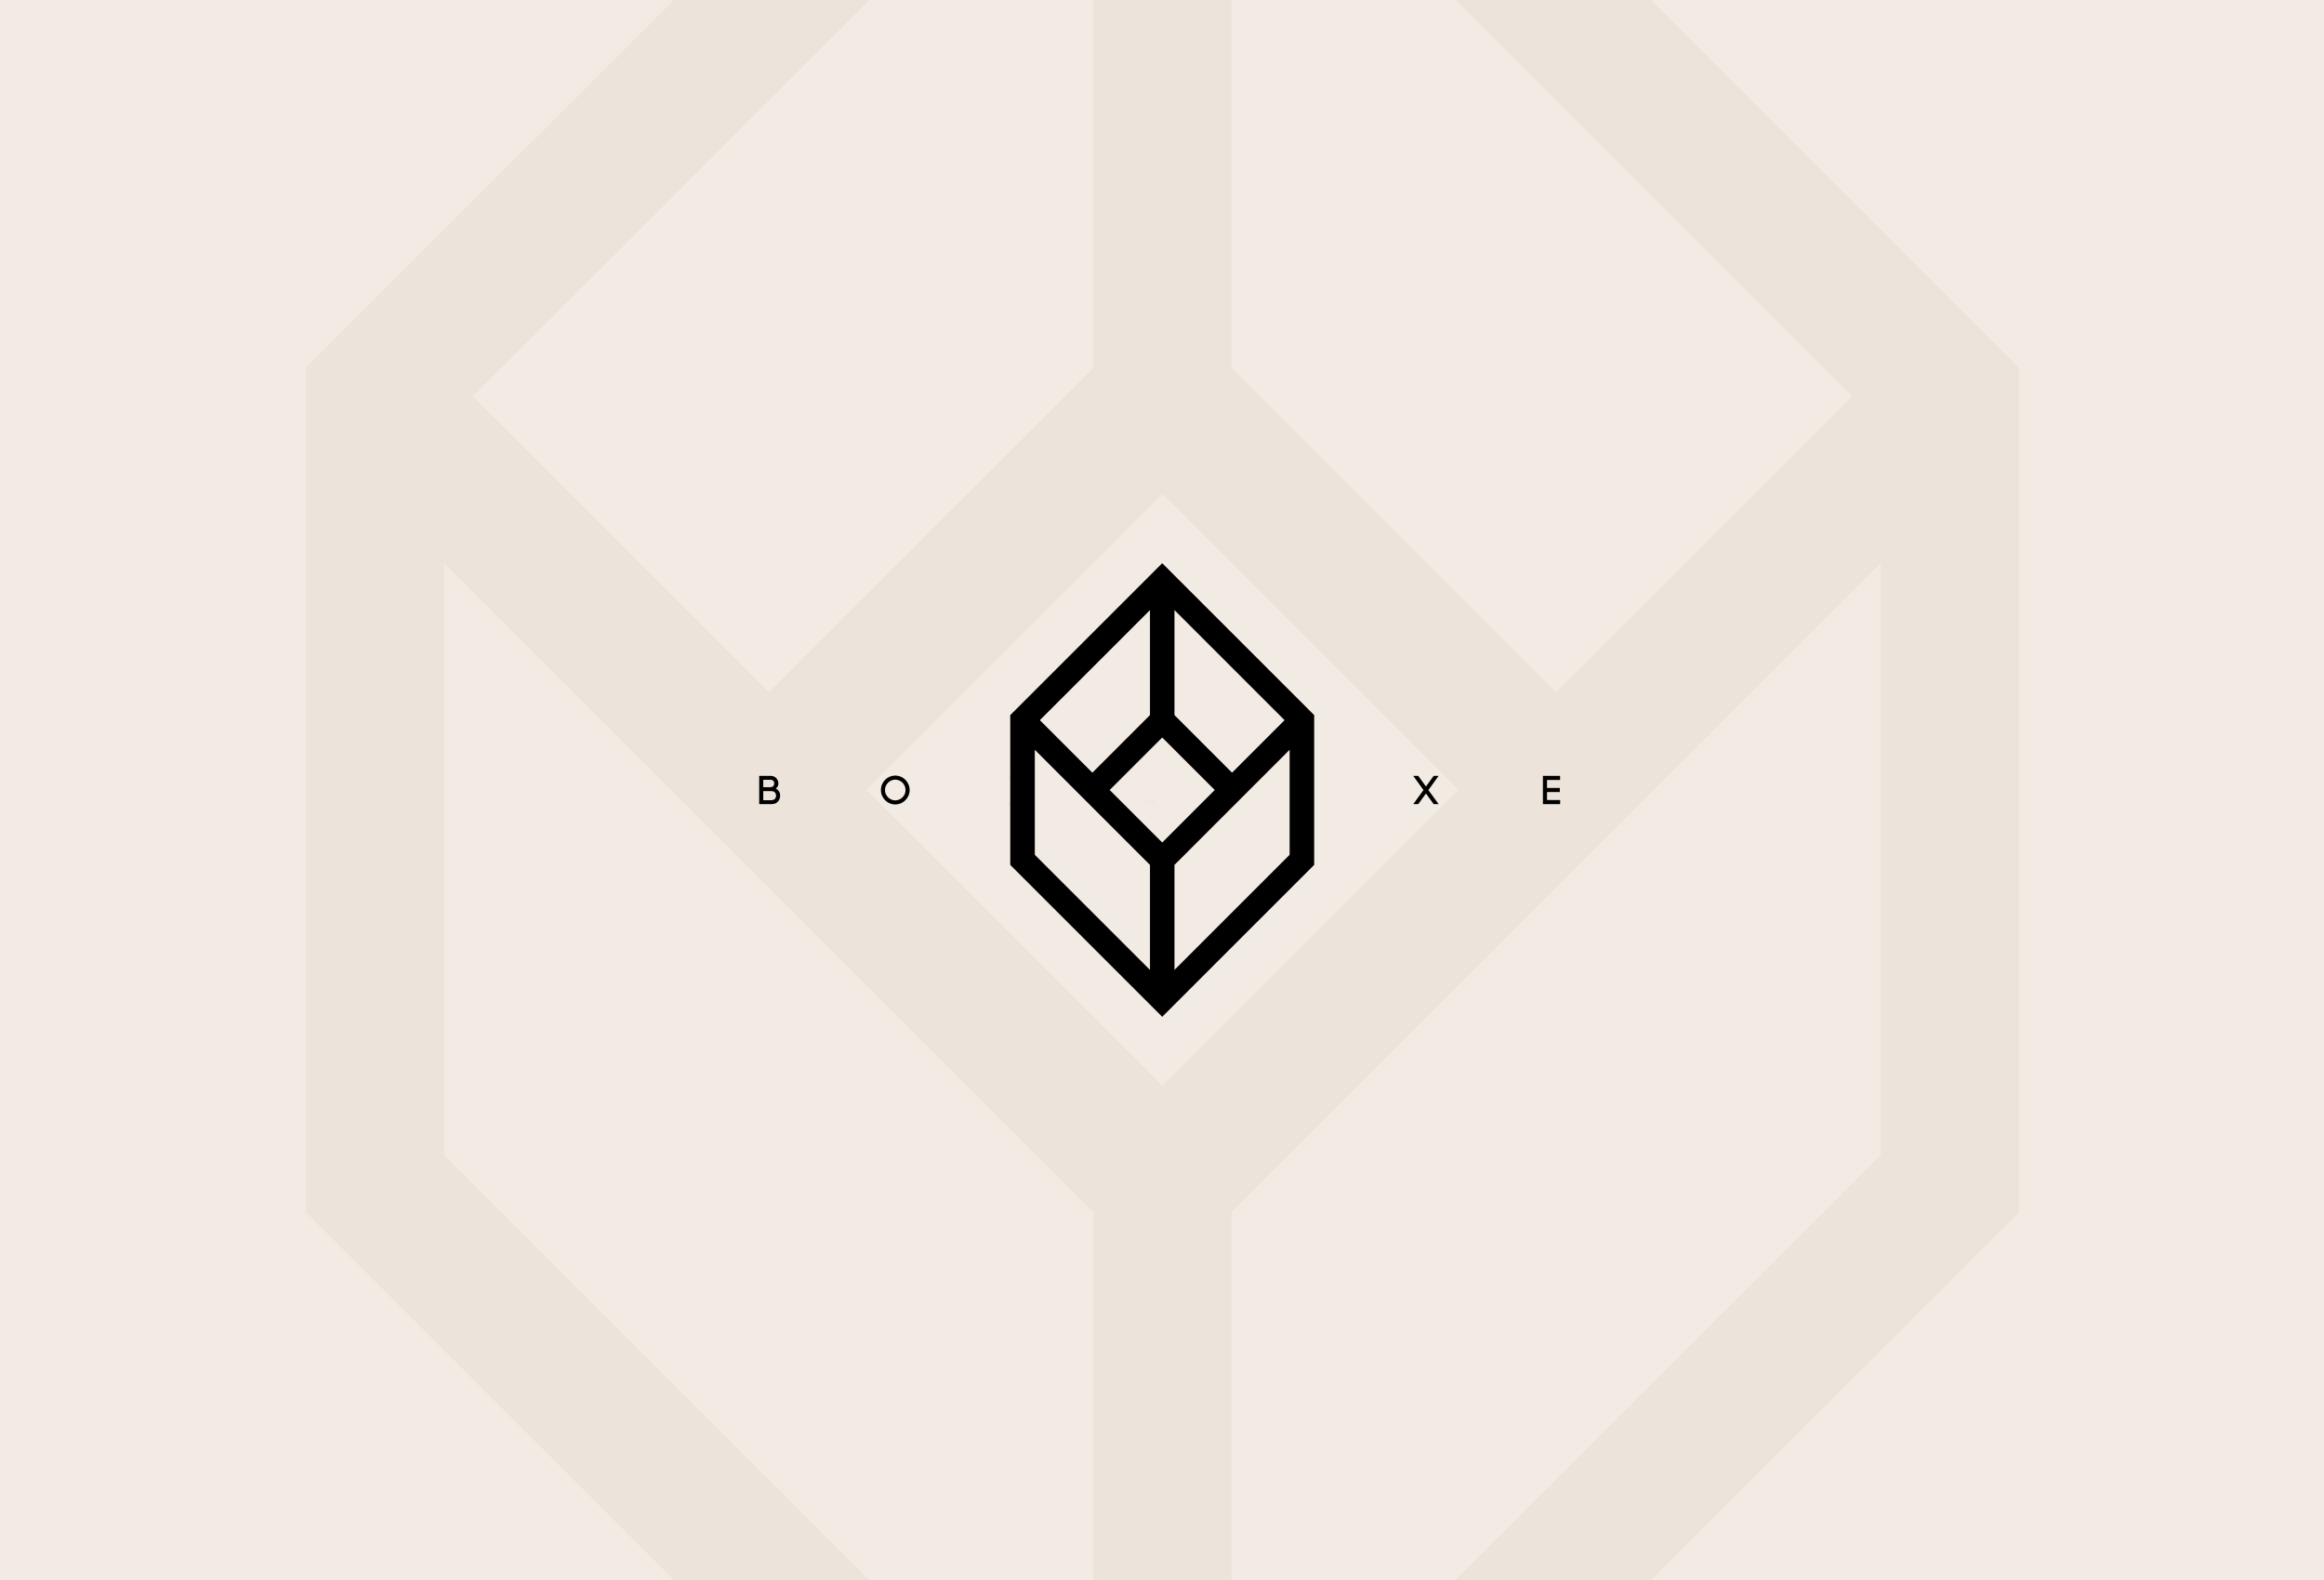 Boxe Beer logo and branding design.